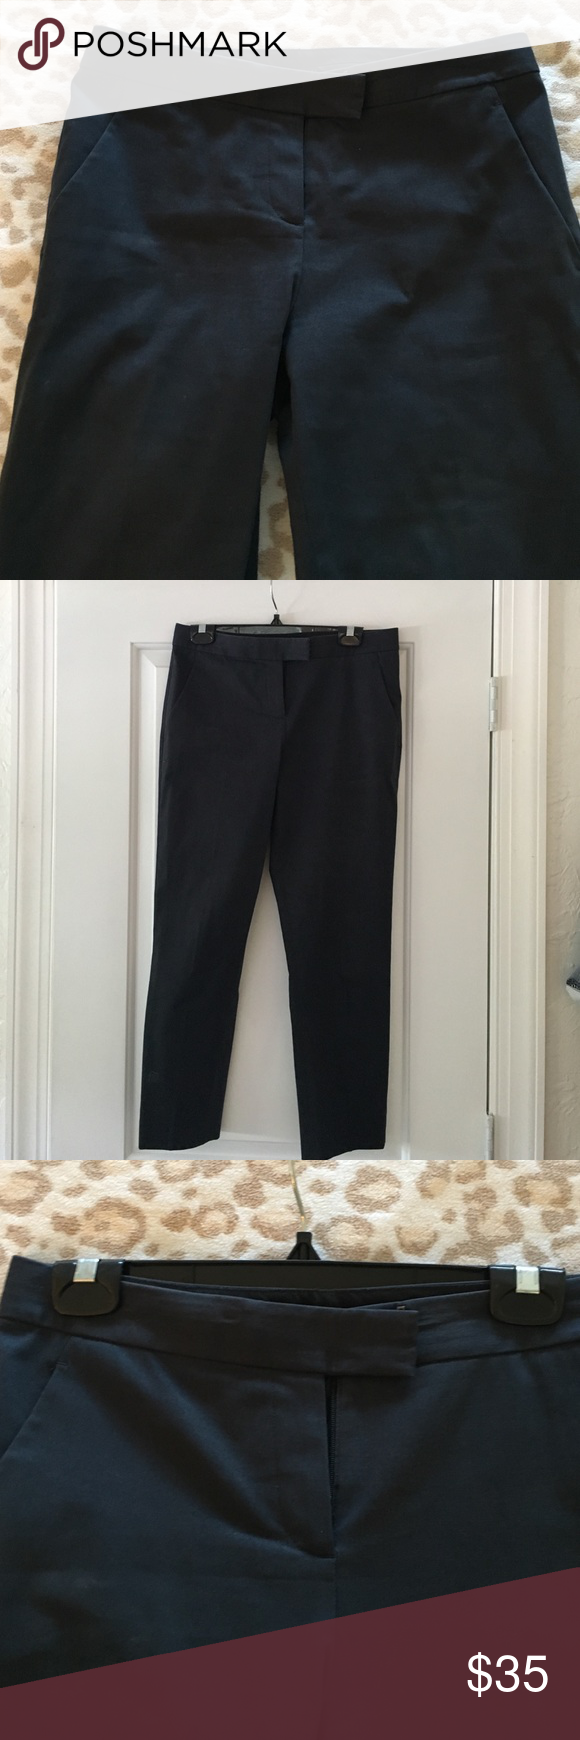 Theory navy pants Size 4 navy Theory pants. Great used condition. Theory Pants